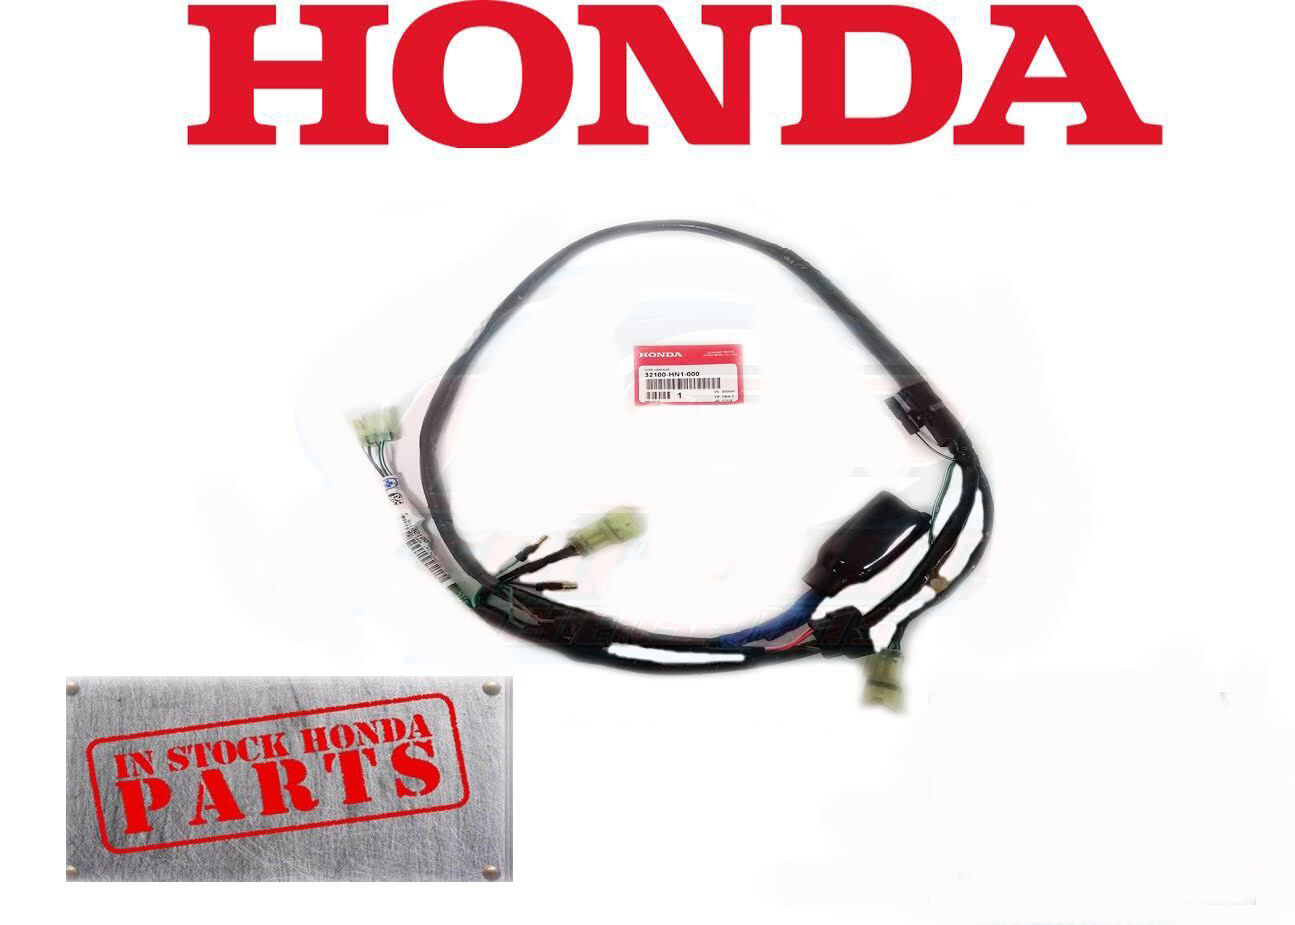 New Genuine Honda 1999 - 2004 Trx400Ex Trx 400 Ex Oem Factory Wire Harness  1 of 1Only 1 available ...